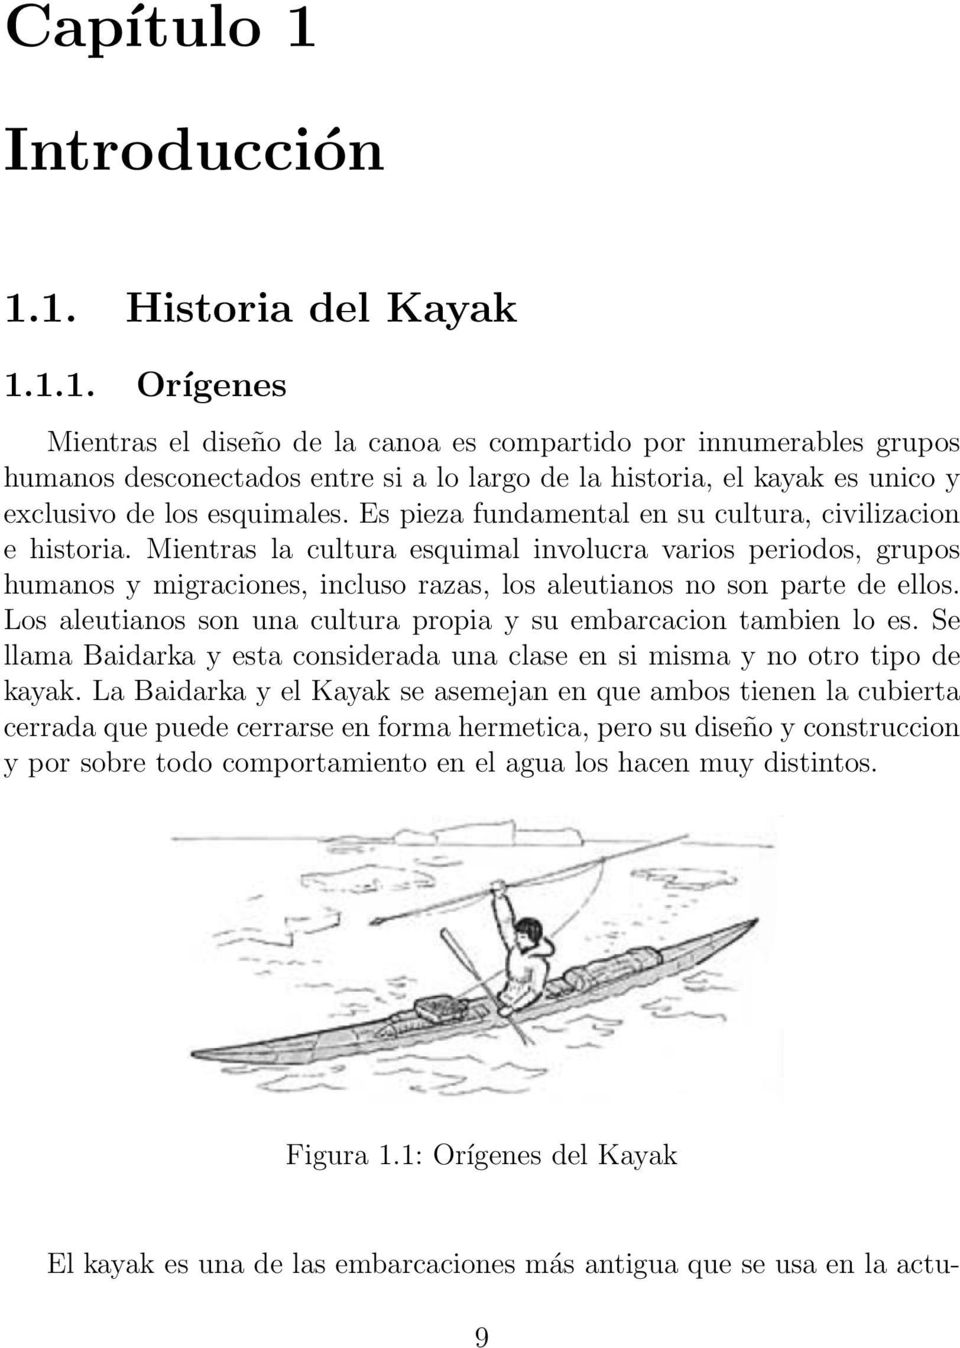 Manual de kayak de traves a eloy abate pdf for Manual de diseno y construccion de albercas pdf